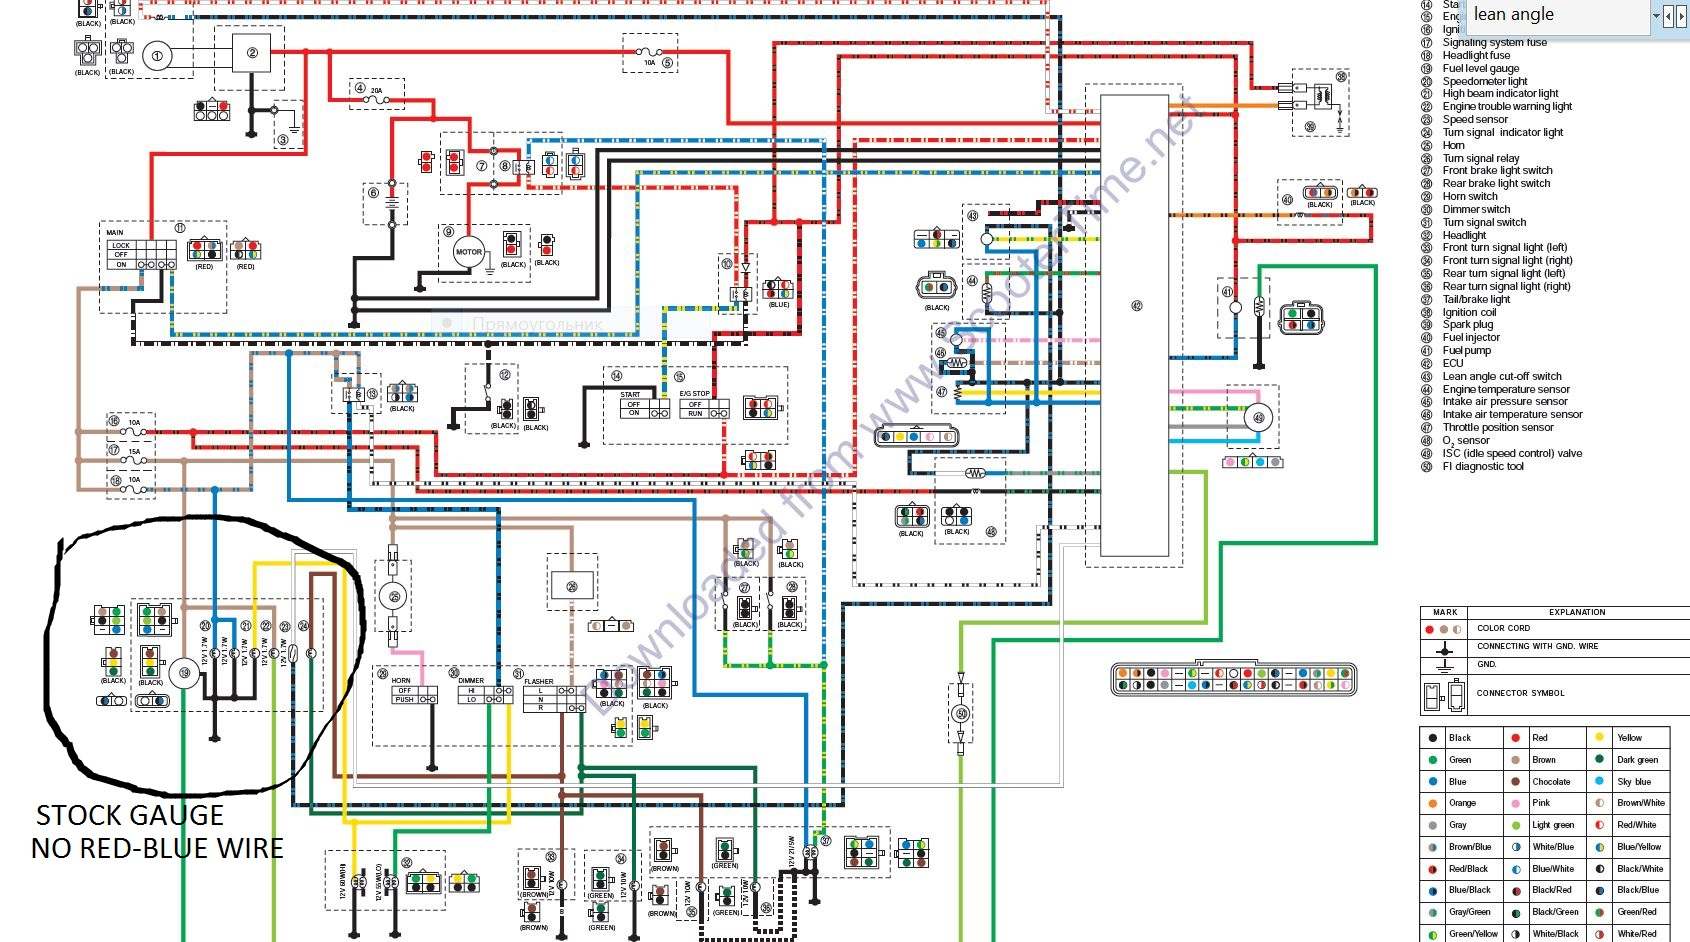 yamaha zuma ignition wiring diagram yamaha cdi ignition wiring diagram